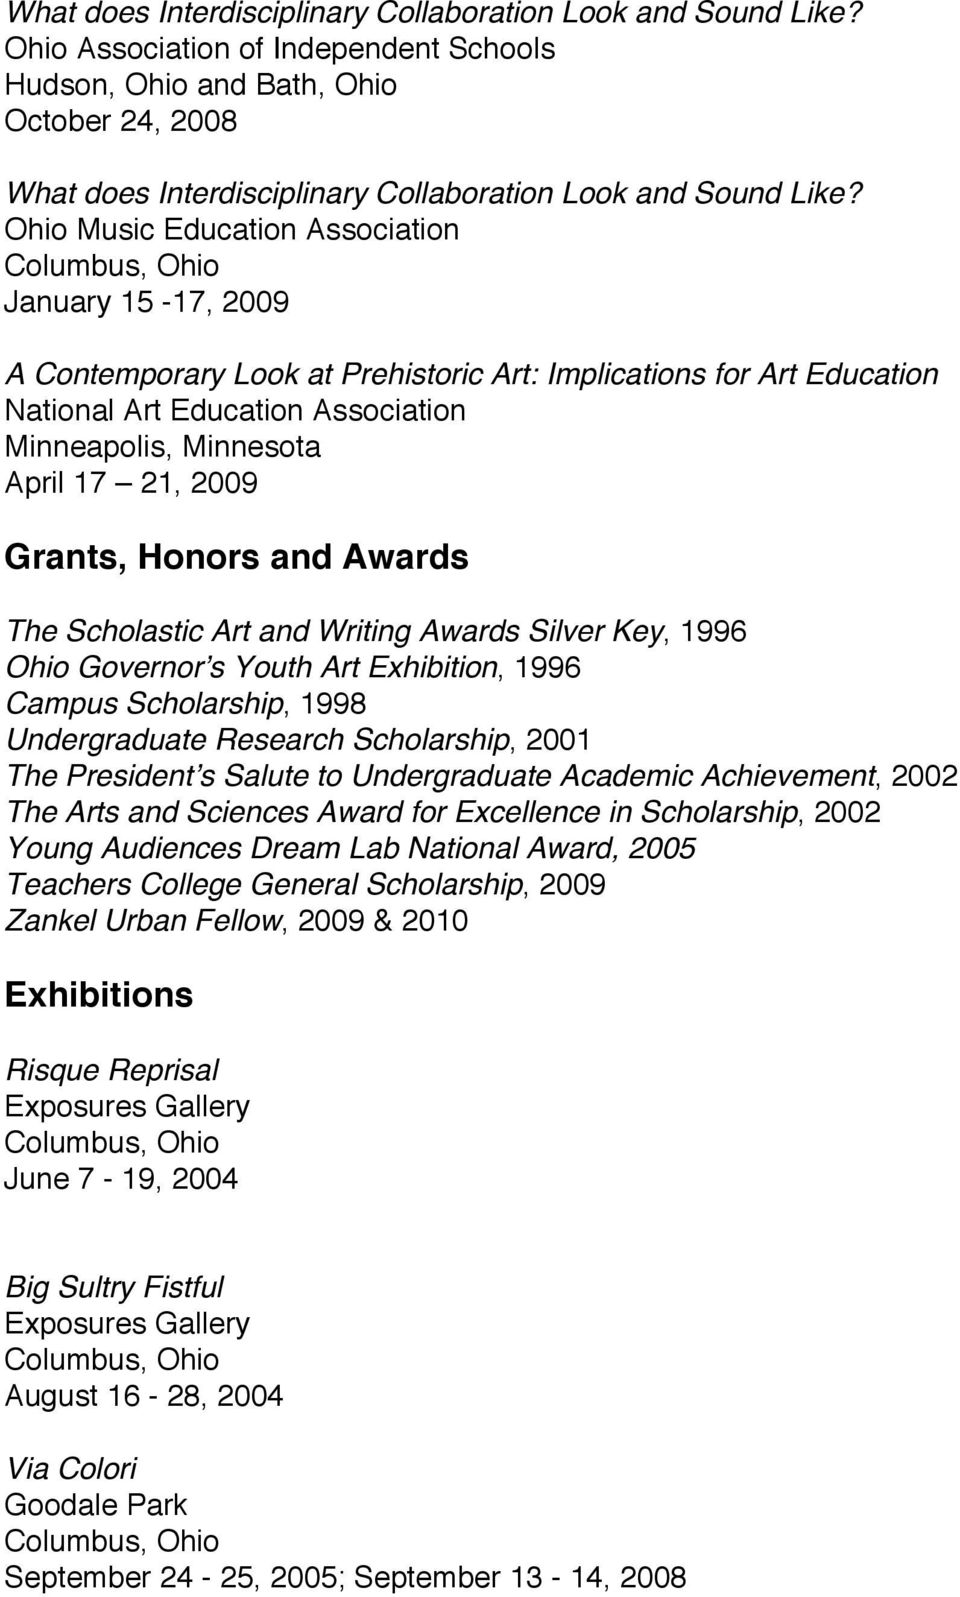 Education Minneapolis, Minnesota April 17 21, 2009 Grants, Honors and Awards The Scholastic Art and Writing Awards Silver Key, 1996 Ohio Governor's Youth Art Exhibition, 1996 Campus Scholarship, 1998